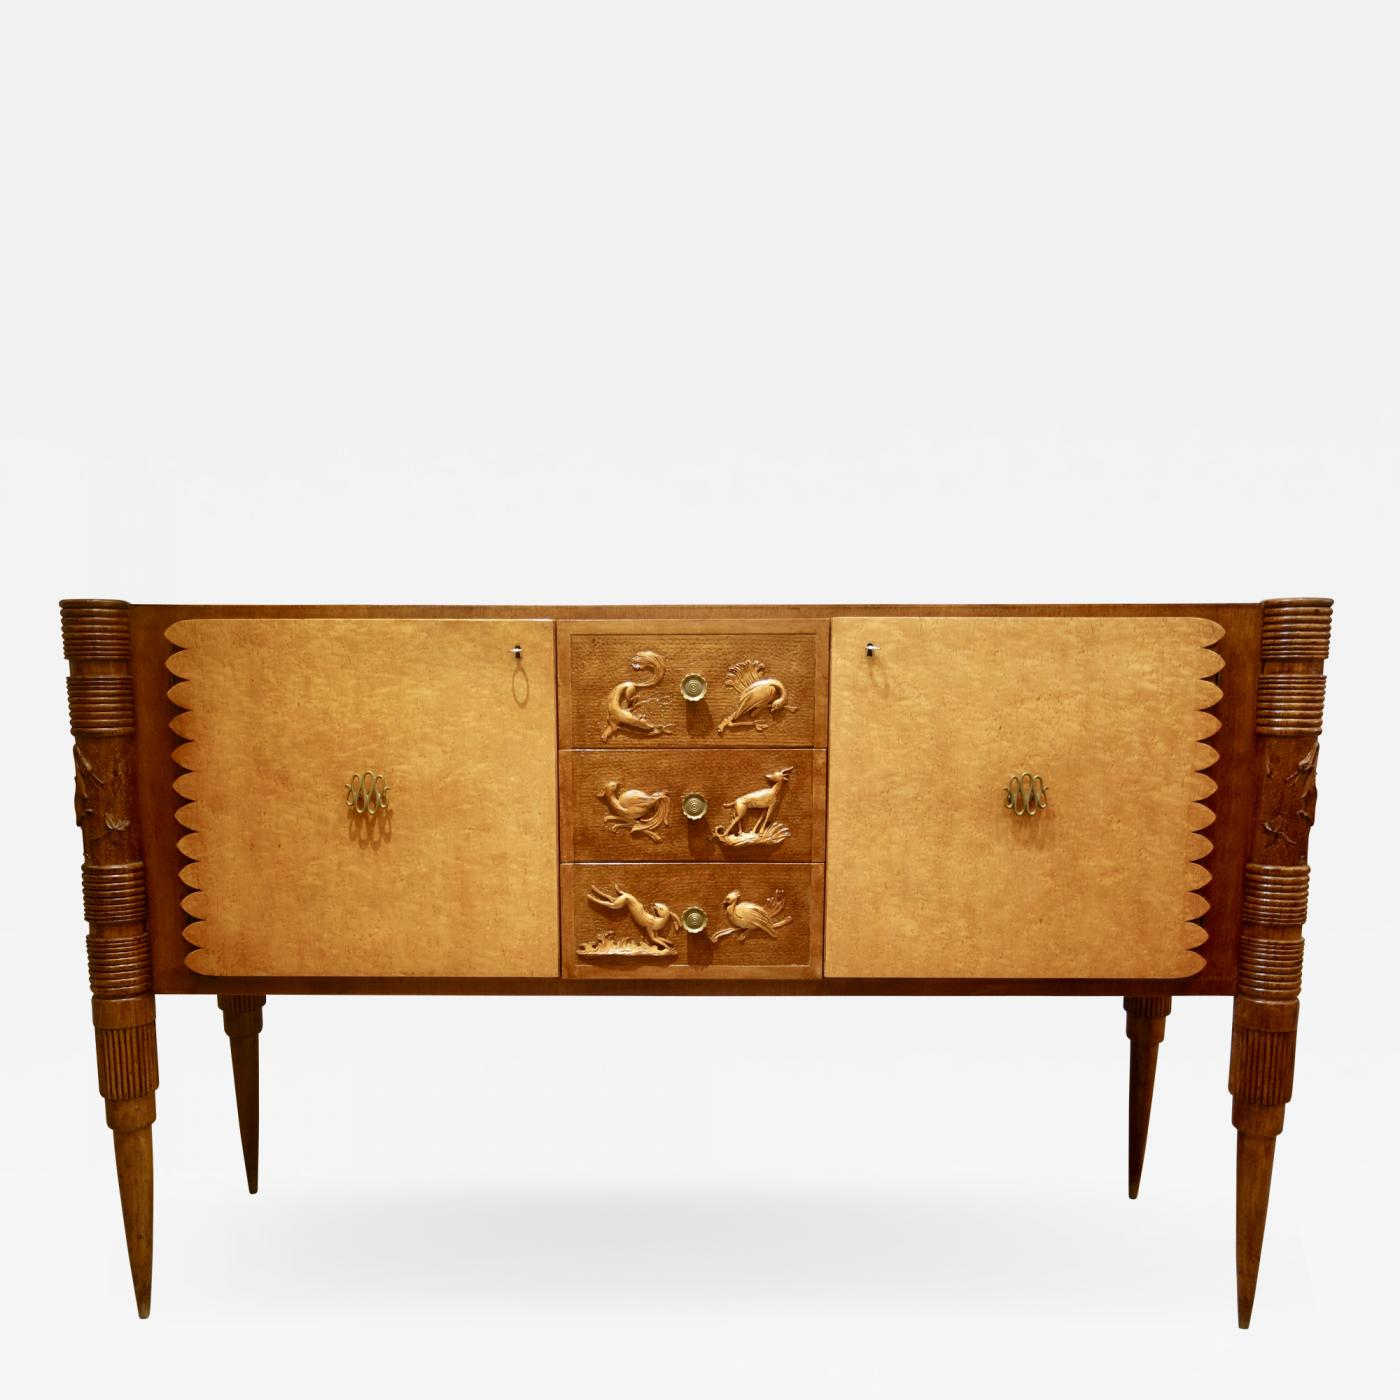 Pier Luigi Colli - An Italian Carved Two-Tone Wood Sideboard Or Credenza Pier Luigi Colli regarding Multi Stripe Credenzas (Image 25 of 30)